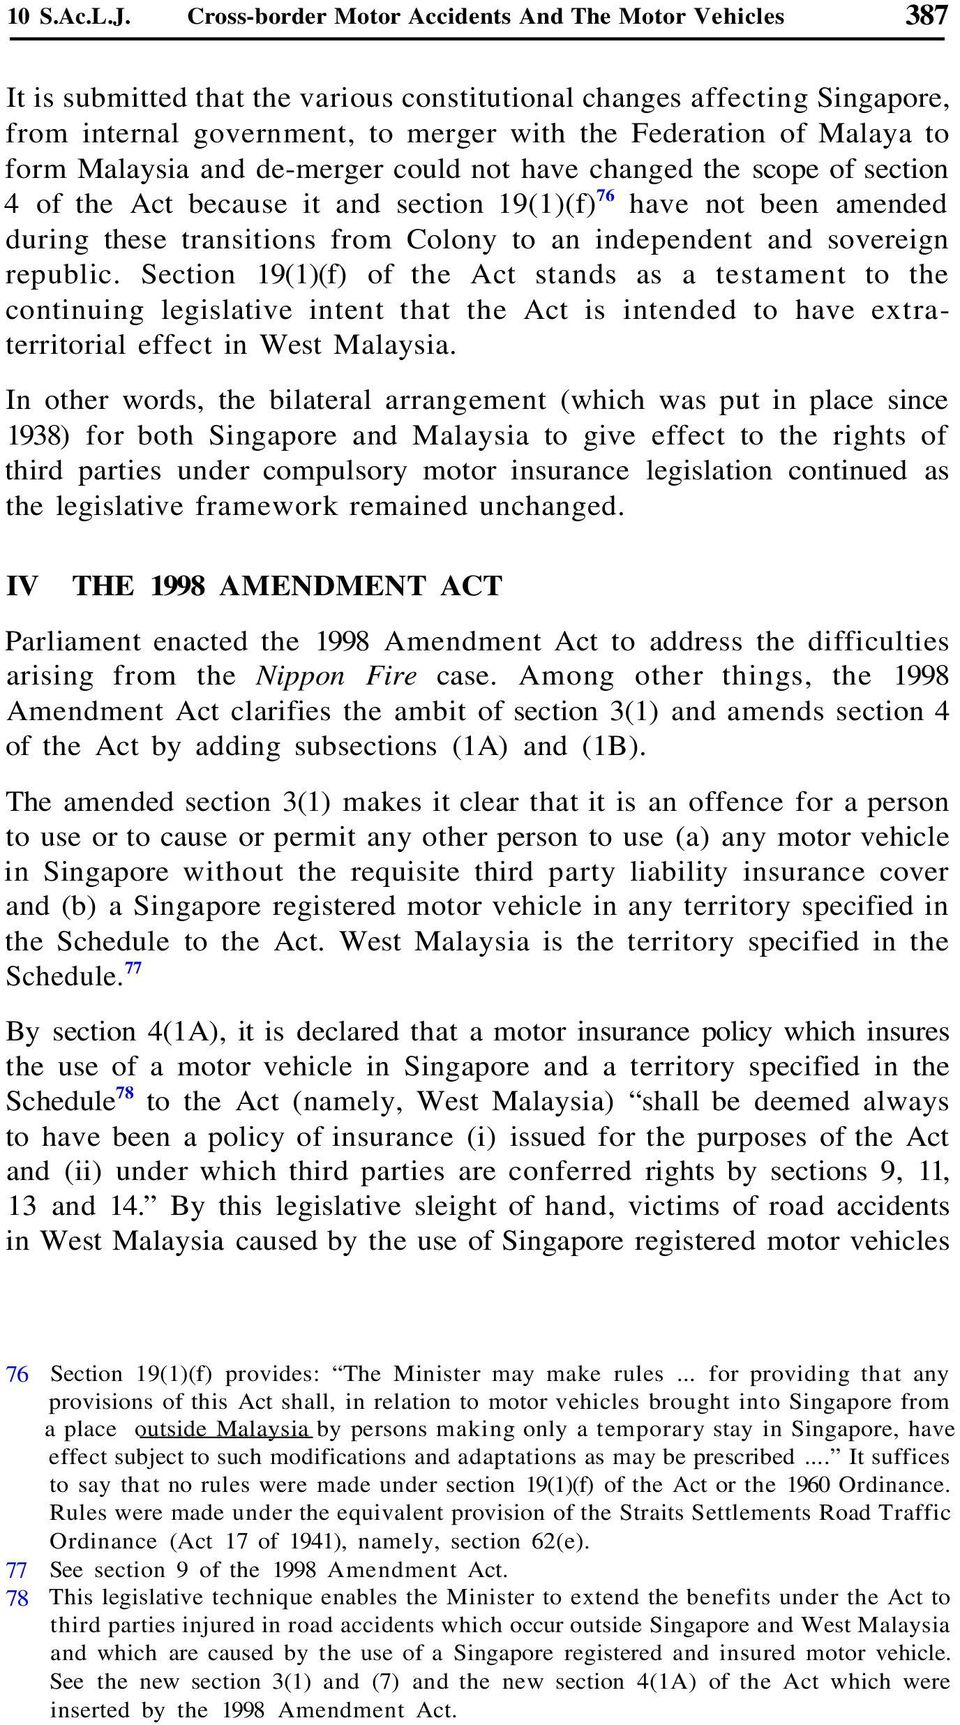 to form Malaysia and de-merger could not have changed the scope of section 4 of the Act because it and section 19(1)(f) 76 have not been amended during these transitions from Colony to an independent